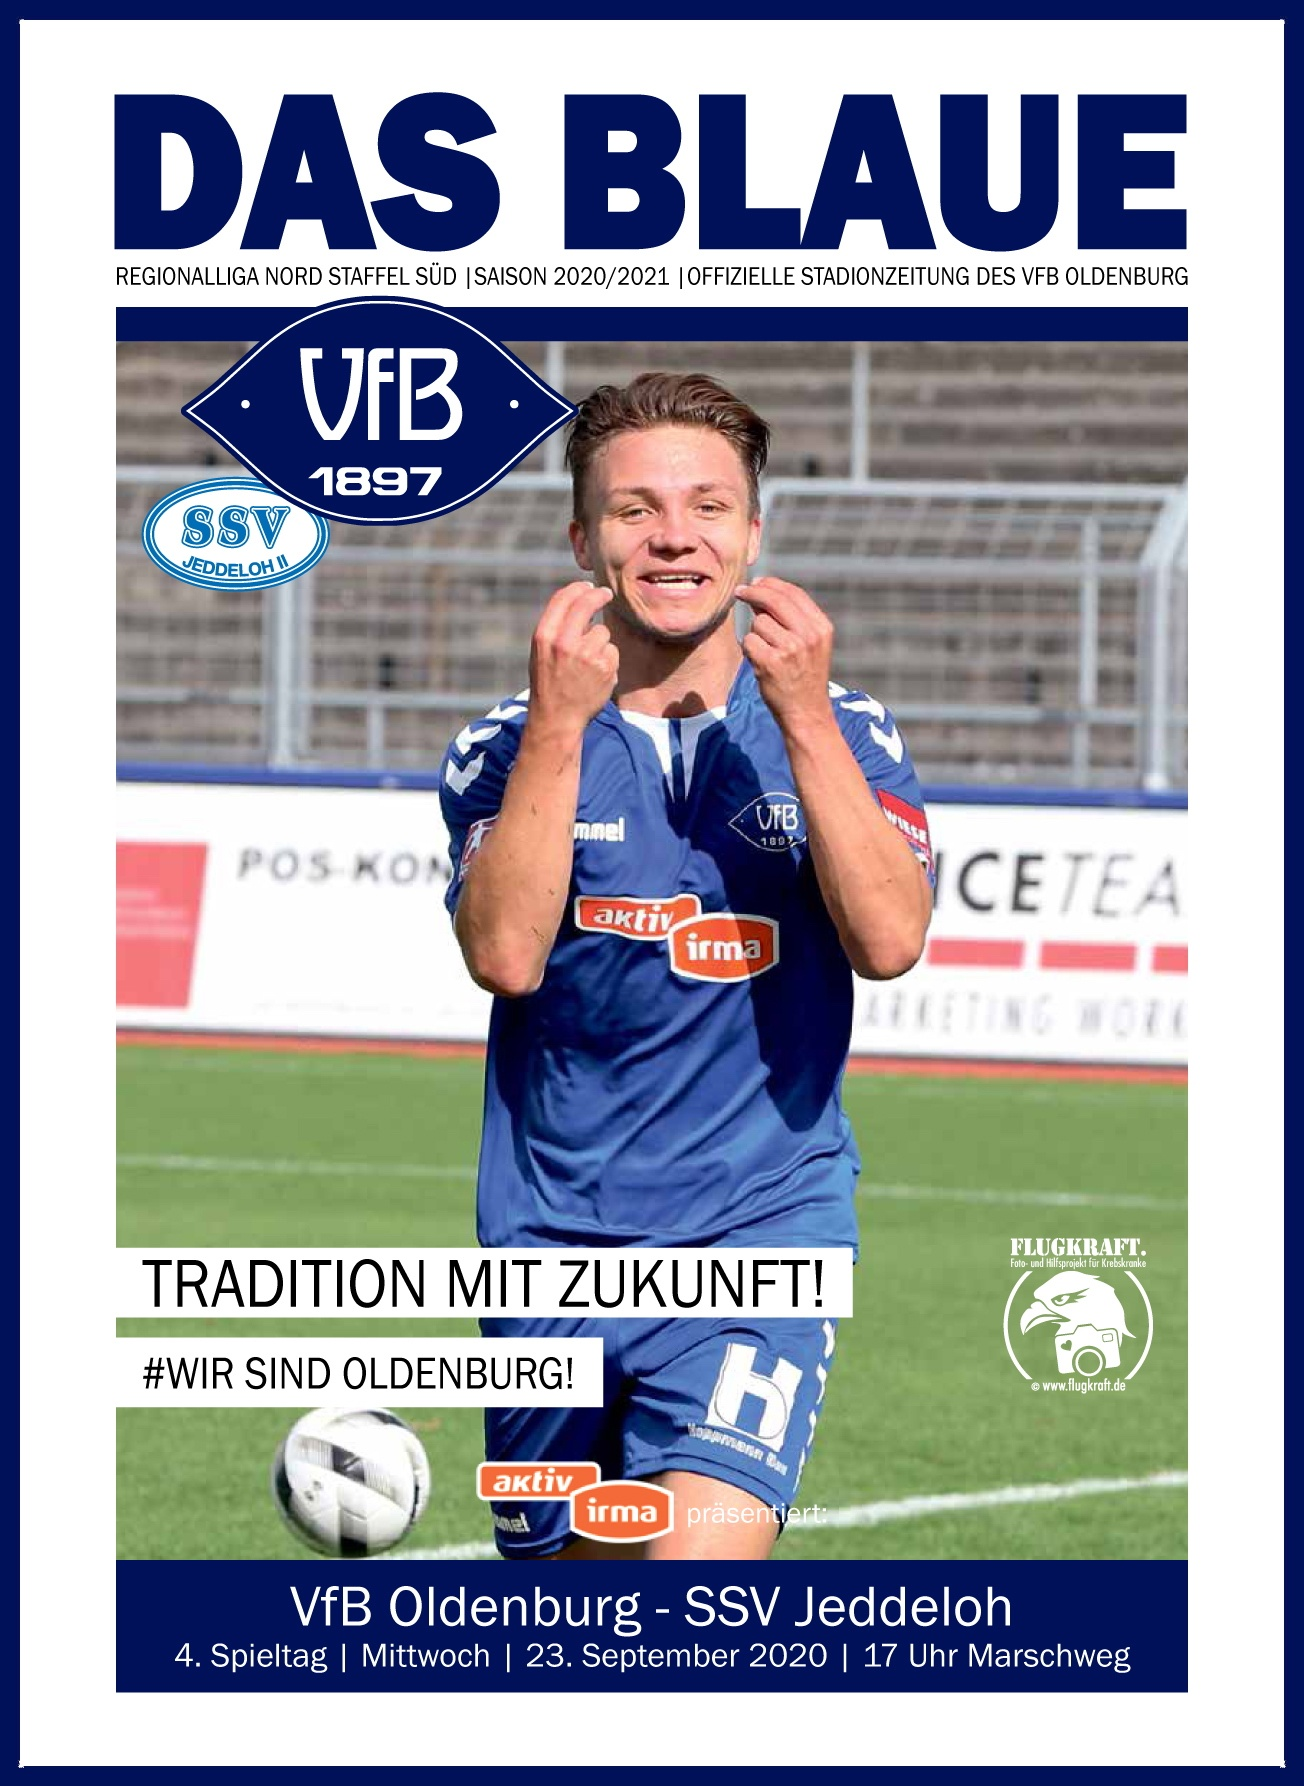 https://vfb-oldenburg.de/wp-content/uploads/2020/09/VFB_Oldenburg_4_Spieltag_2020_2021-1.jpg